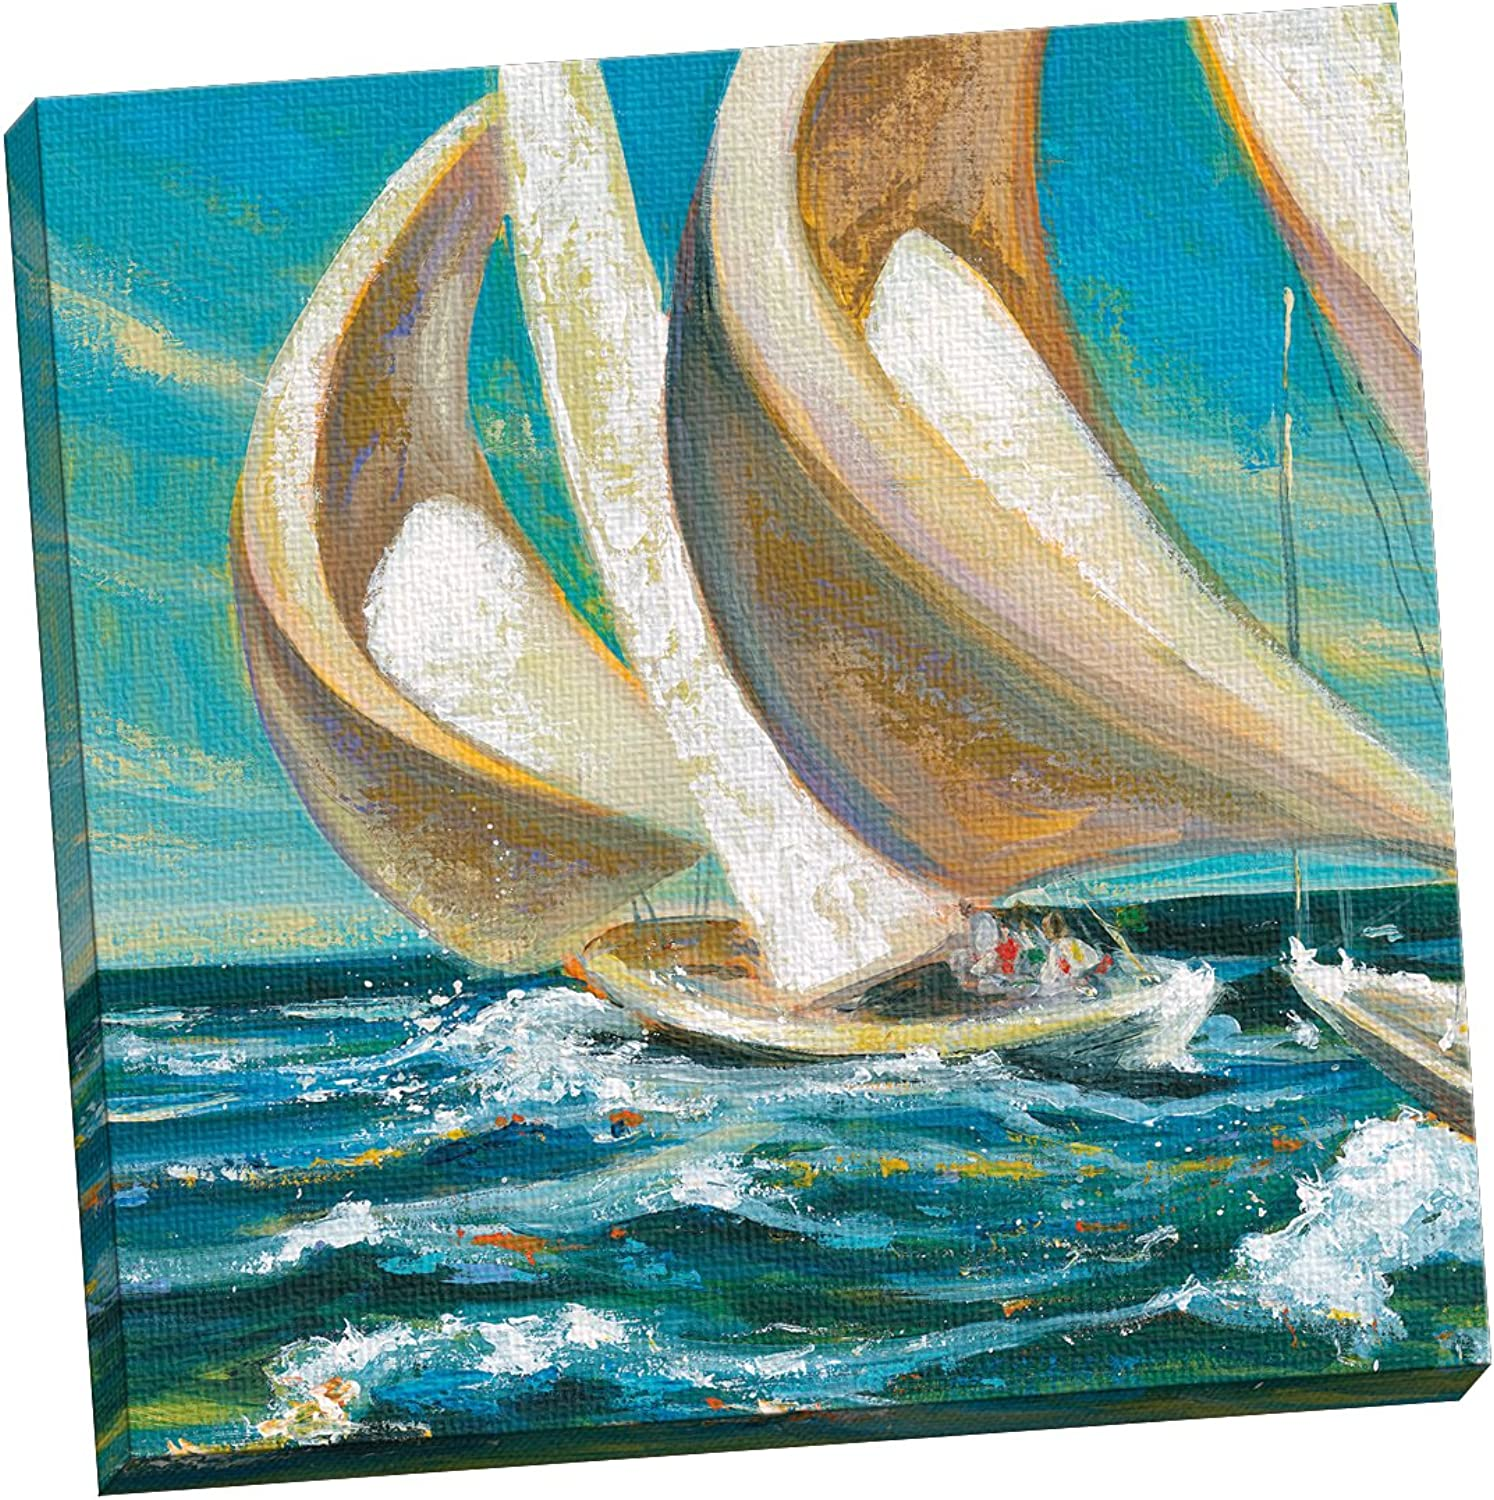 Portfolio Canvas Décor Large Wall Art, Yacht Club Four by Dupre 24x24, Framed and Stretched, Ready to Hang